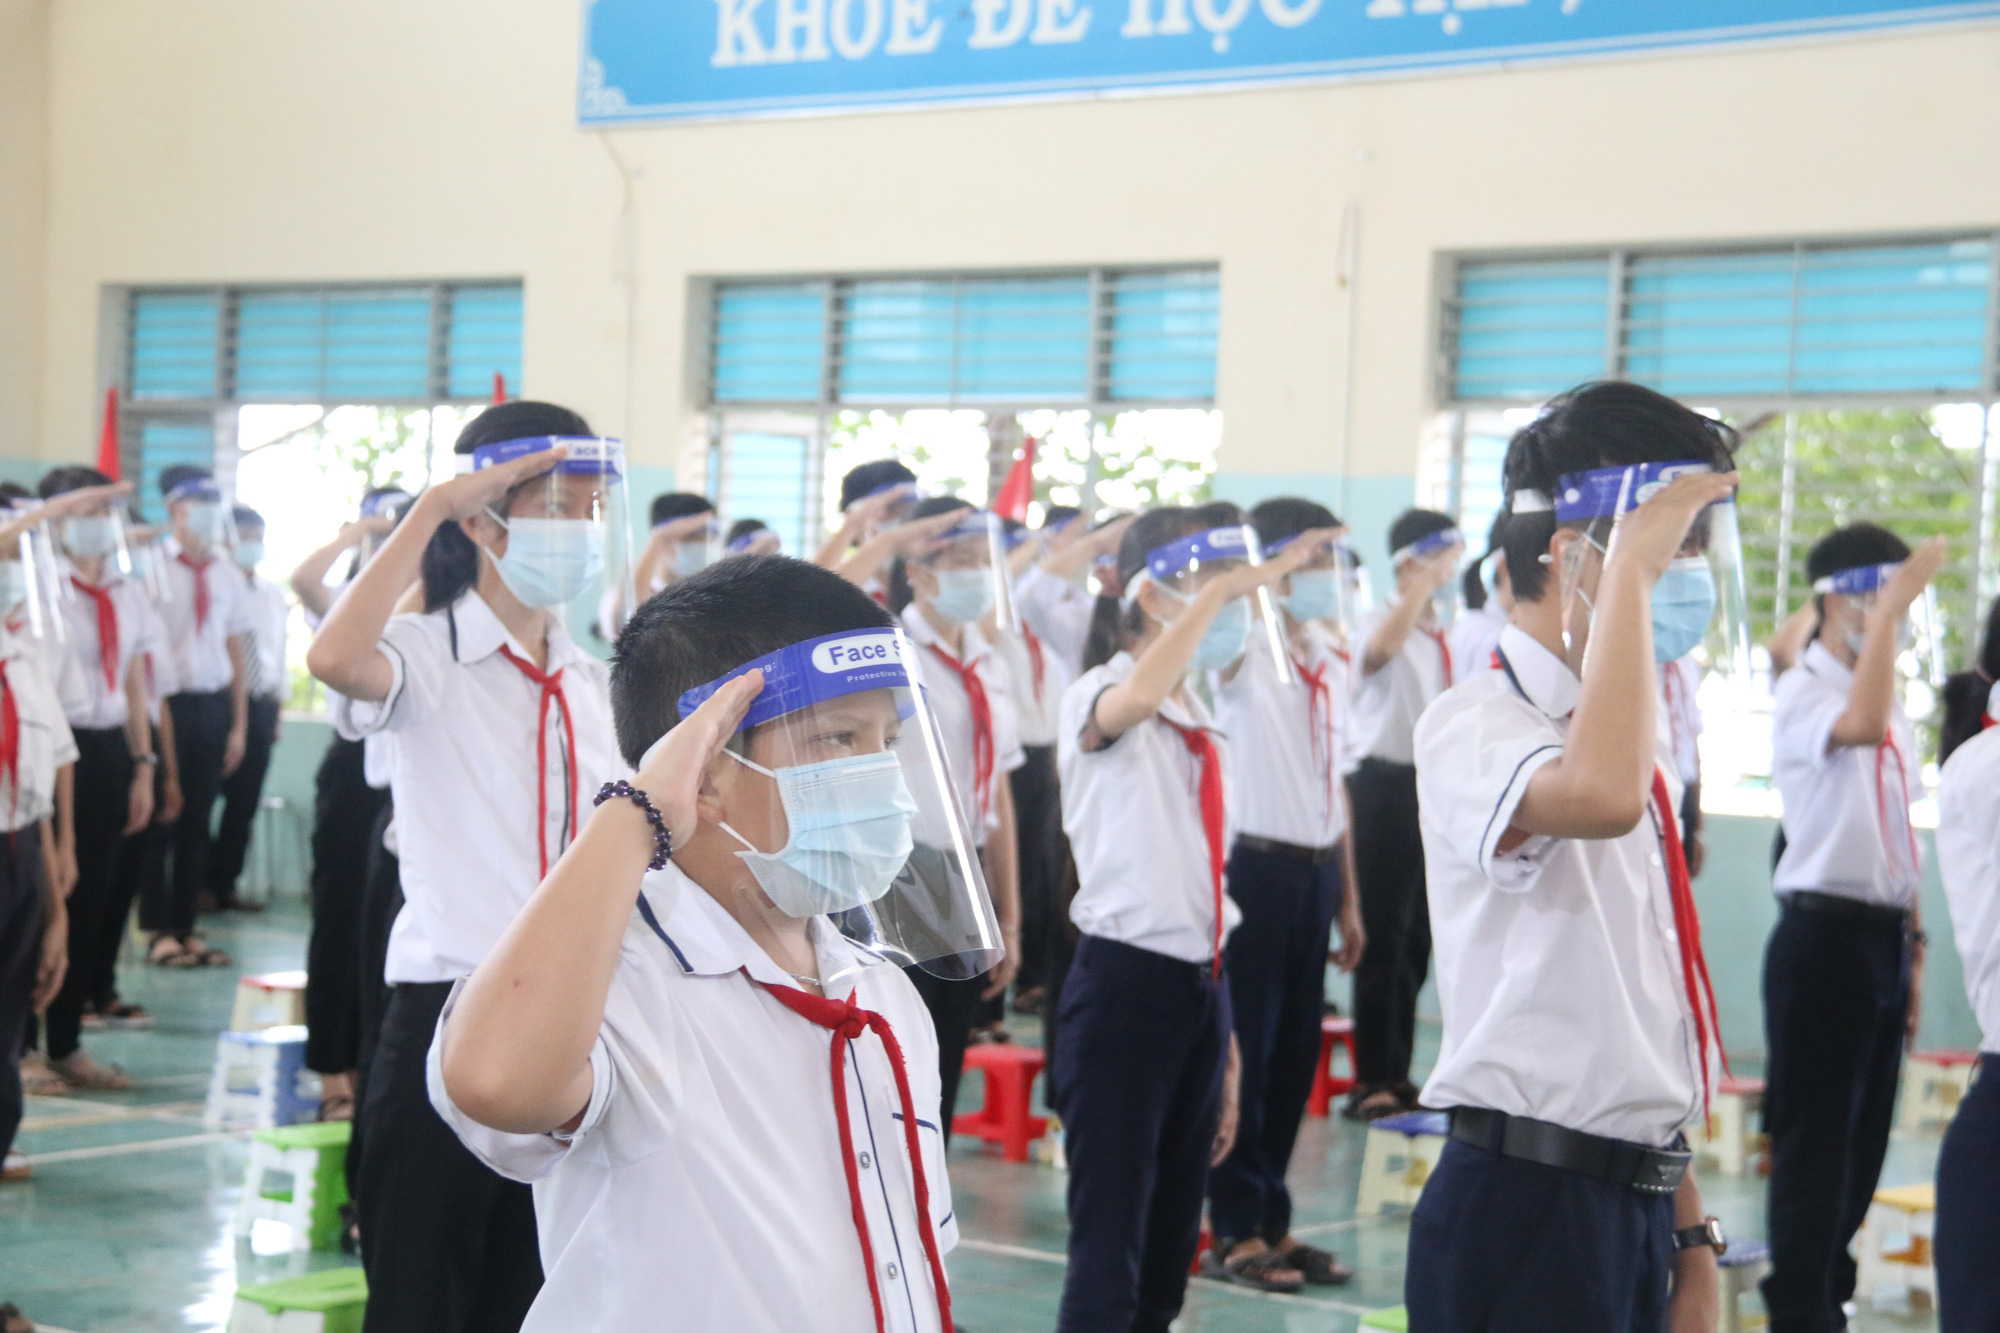 Students attend a school year opening ceremony in Dak Nong Province, September 5, 2021. Photo: Duong Phong / Tuoi Tre